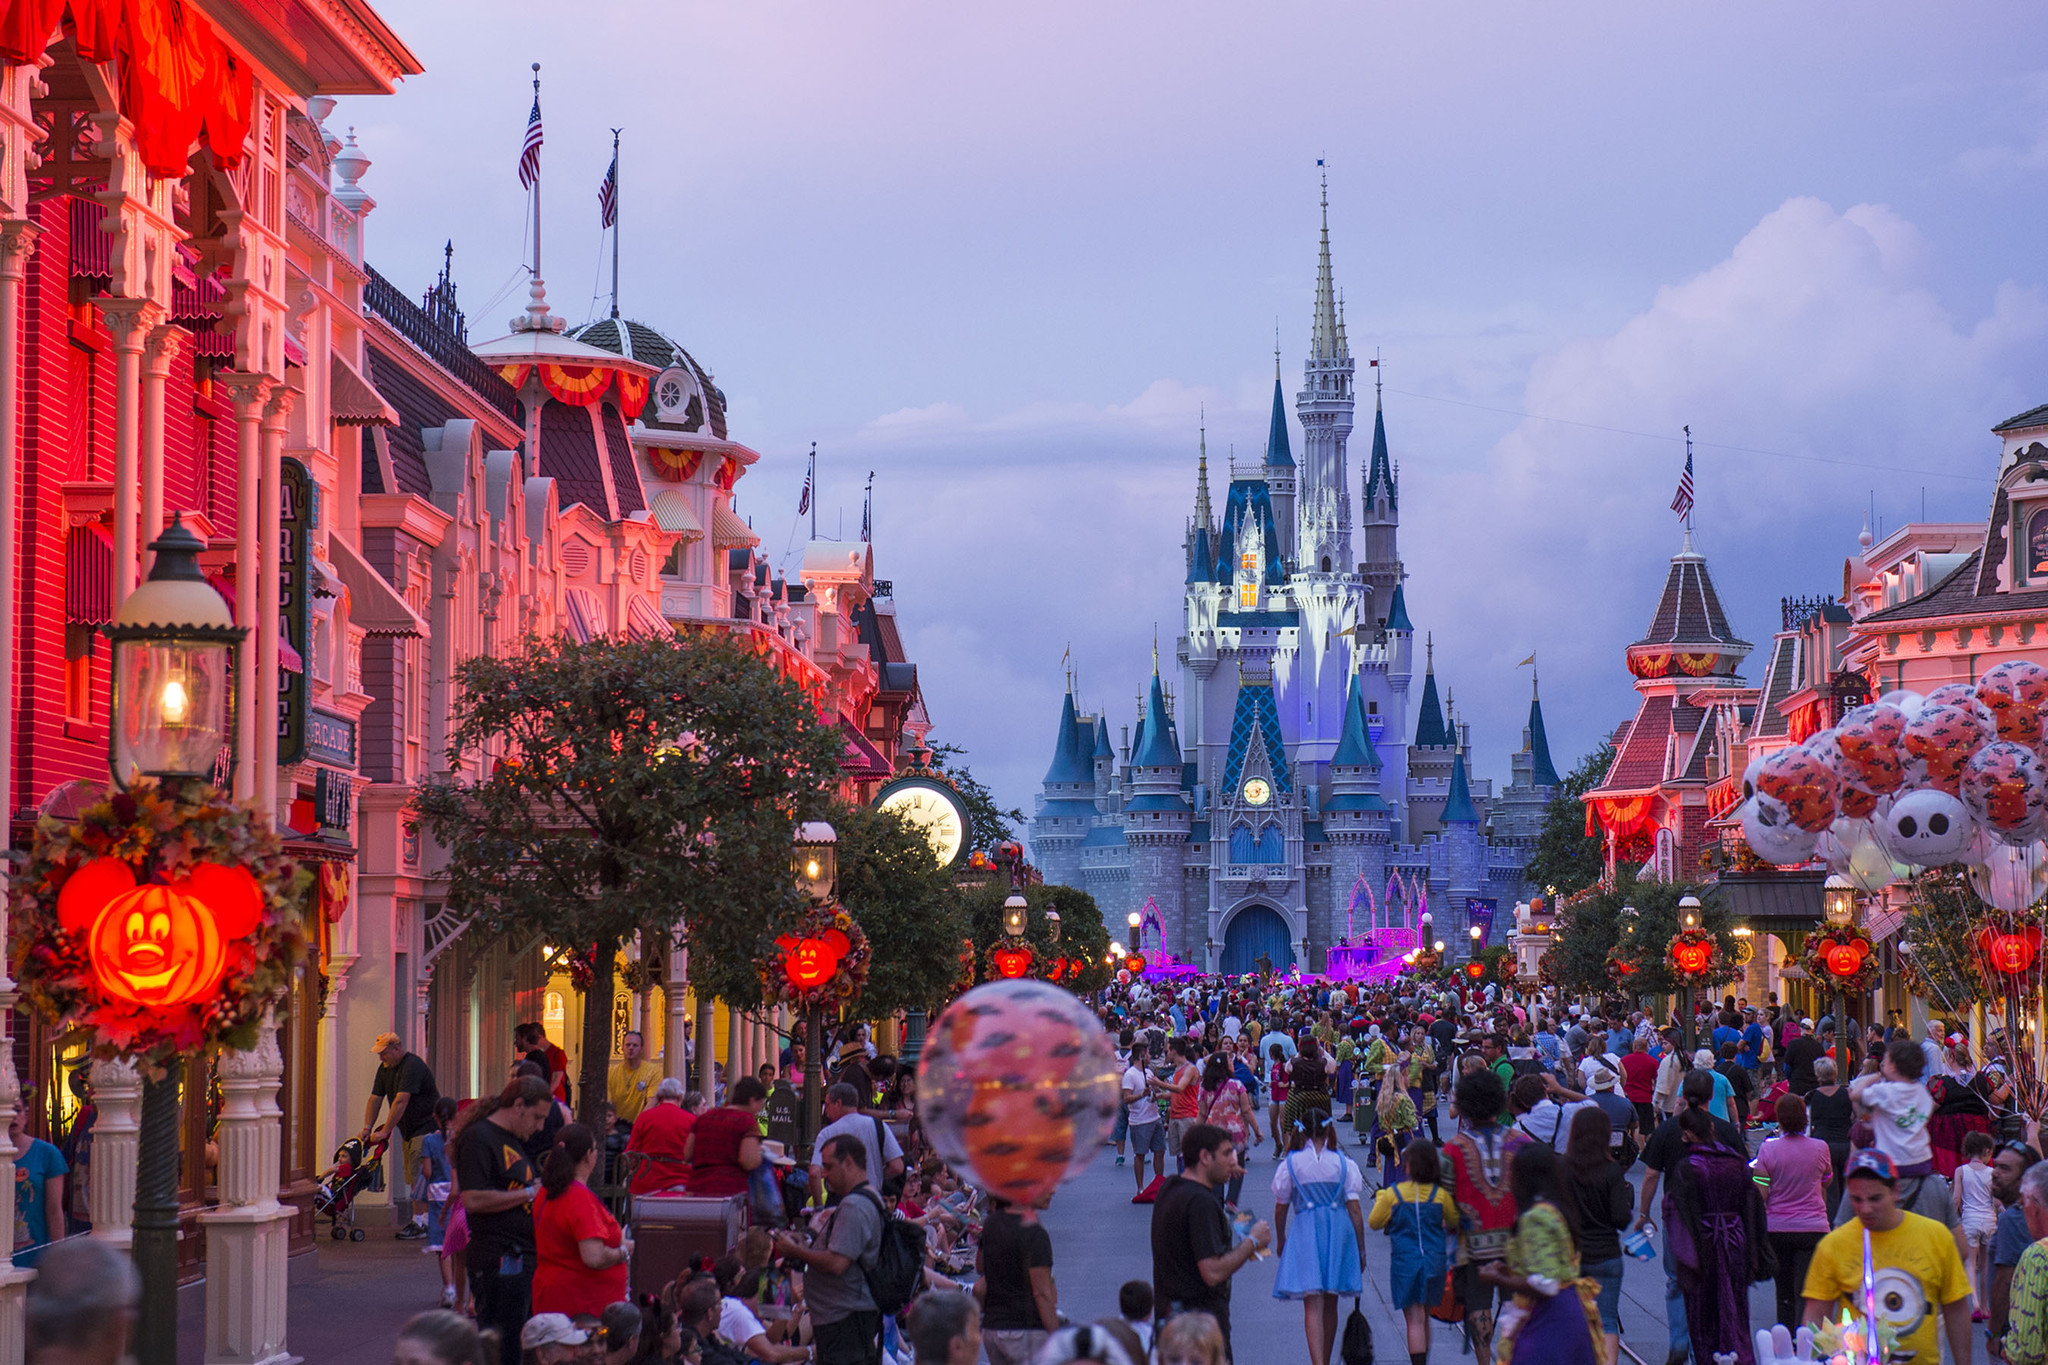 Discover the perfect way to plan your Walt Disney World® vacation both easily and affordably. Your Travel Agent can book the perfect Walt Disney World vacation that fits your family, taste and budget.